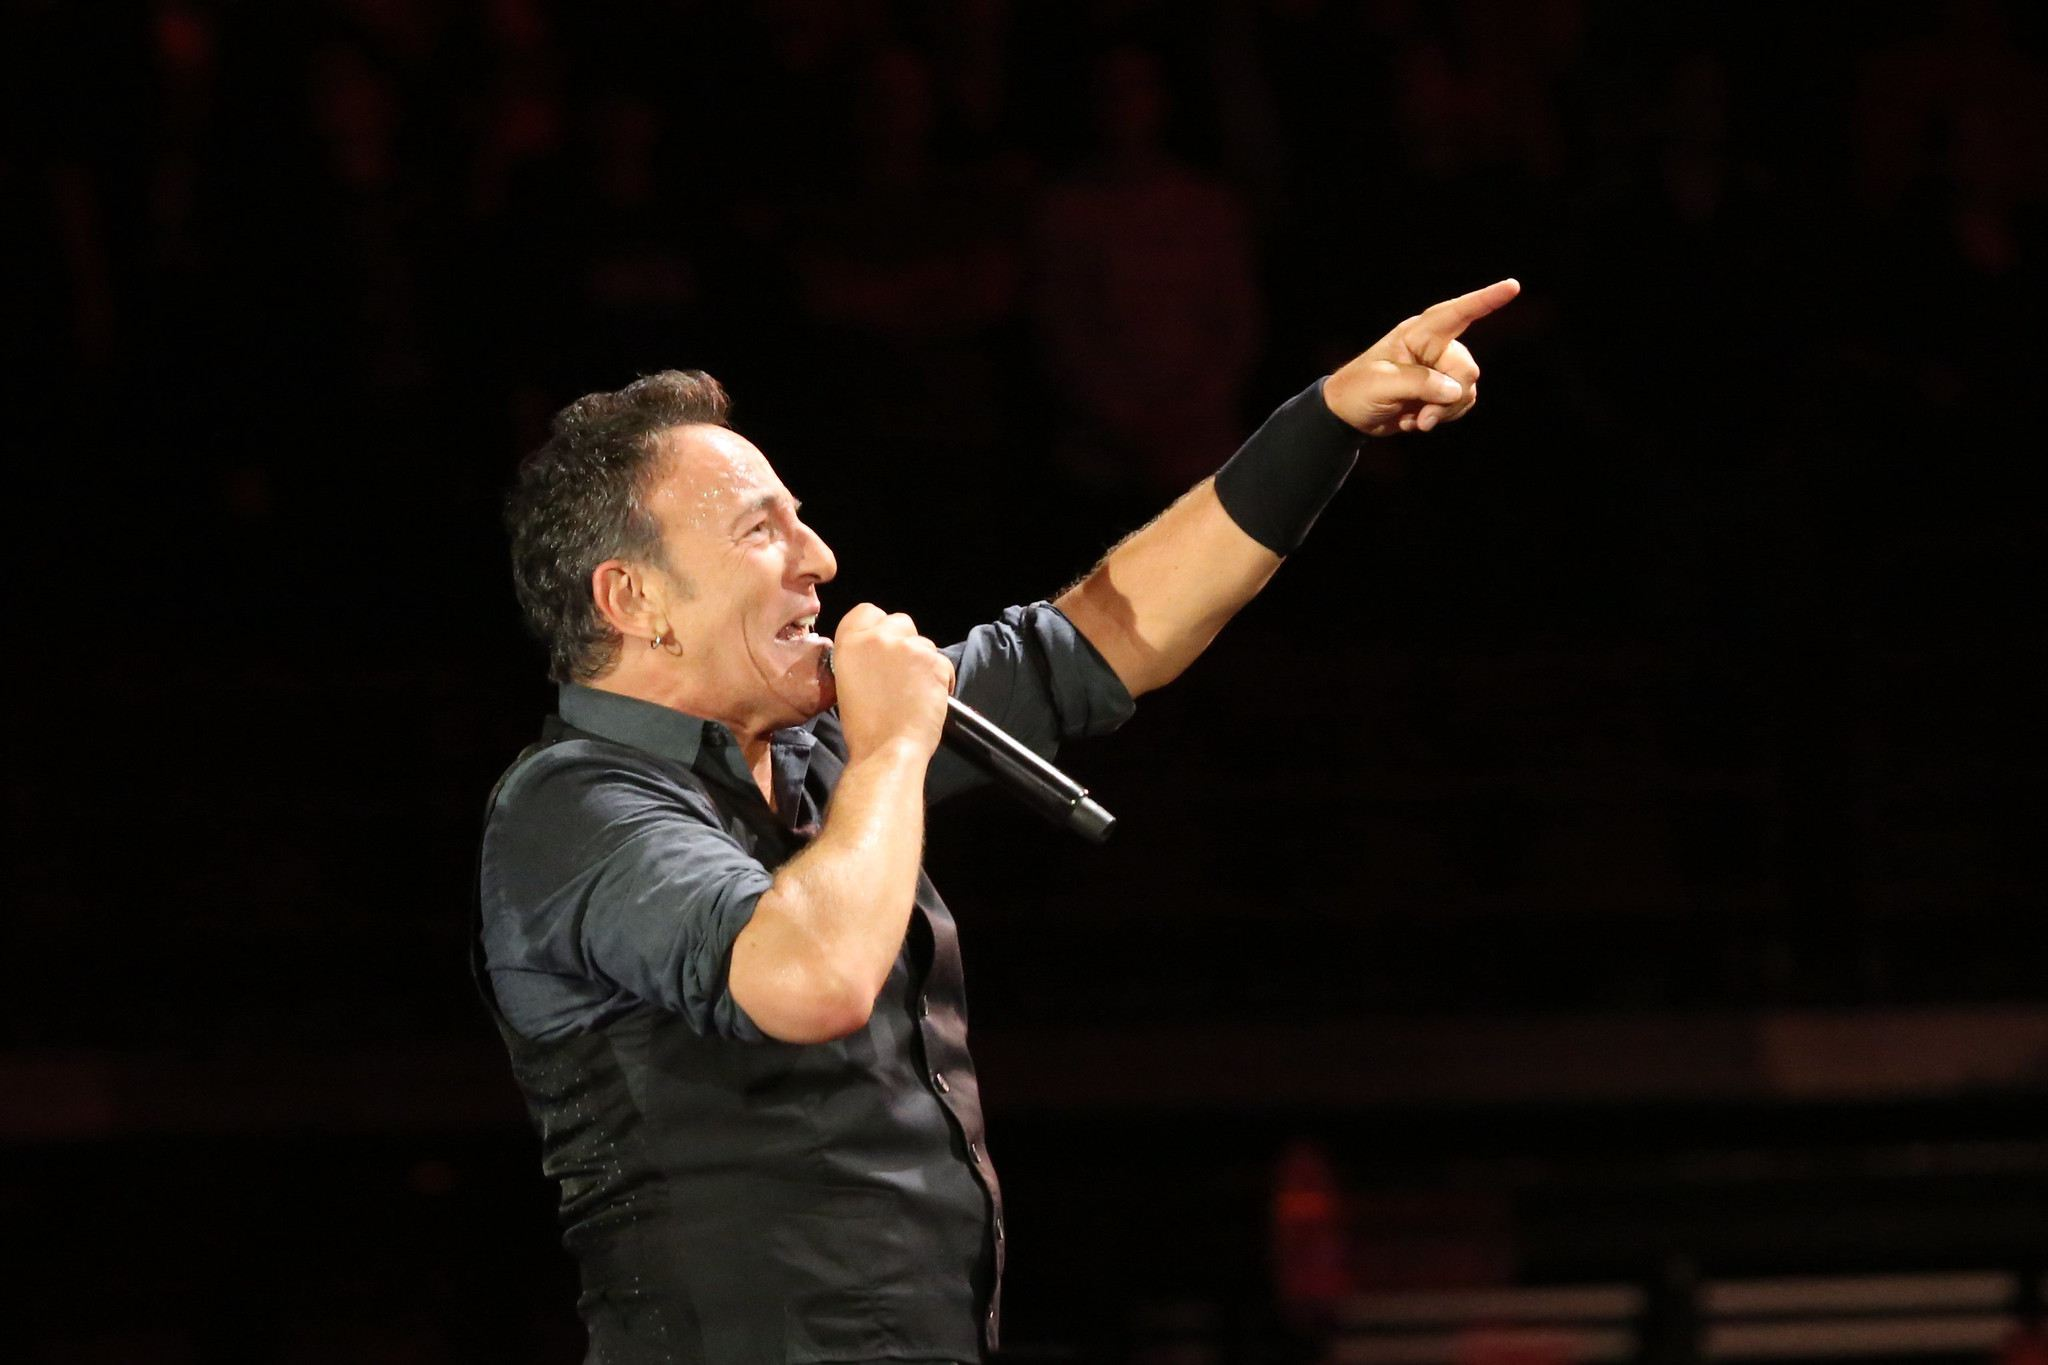 Bruce Springsteen in profile performing on a dark stage.